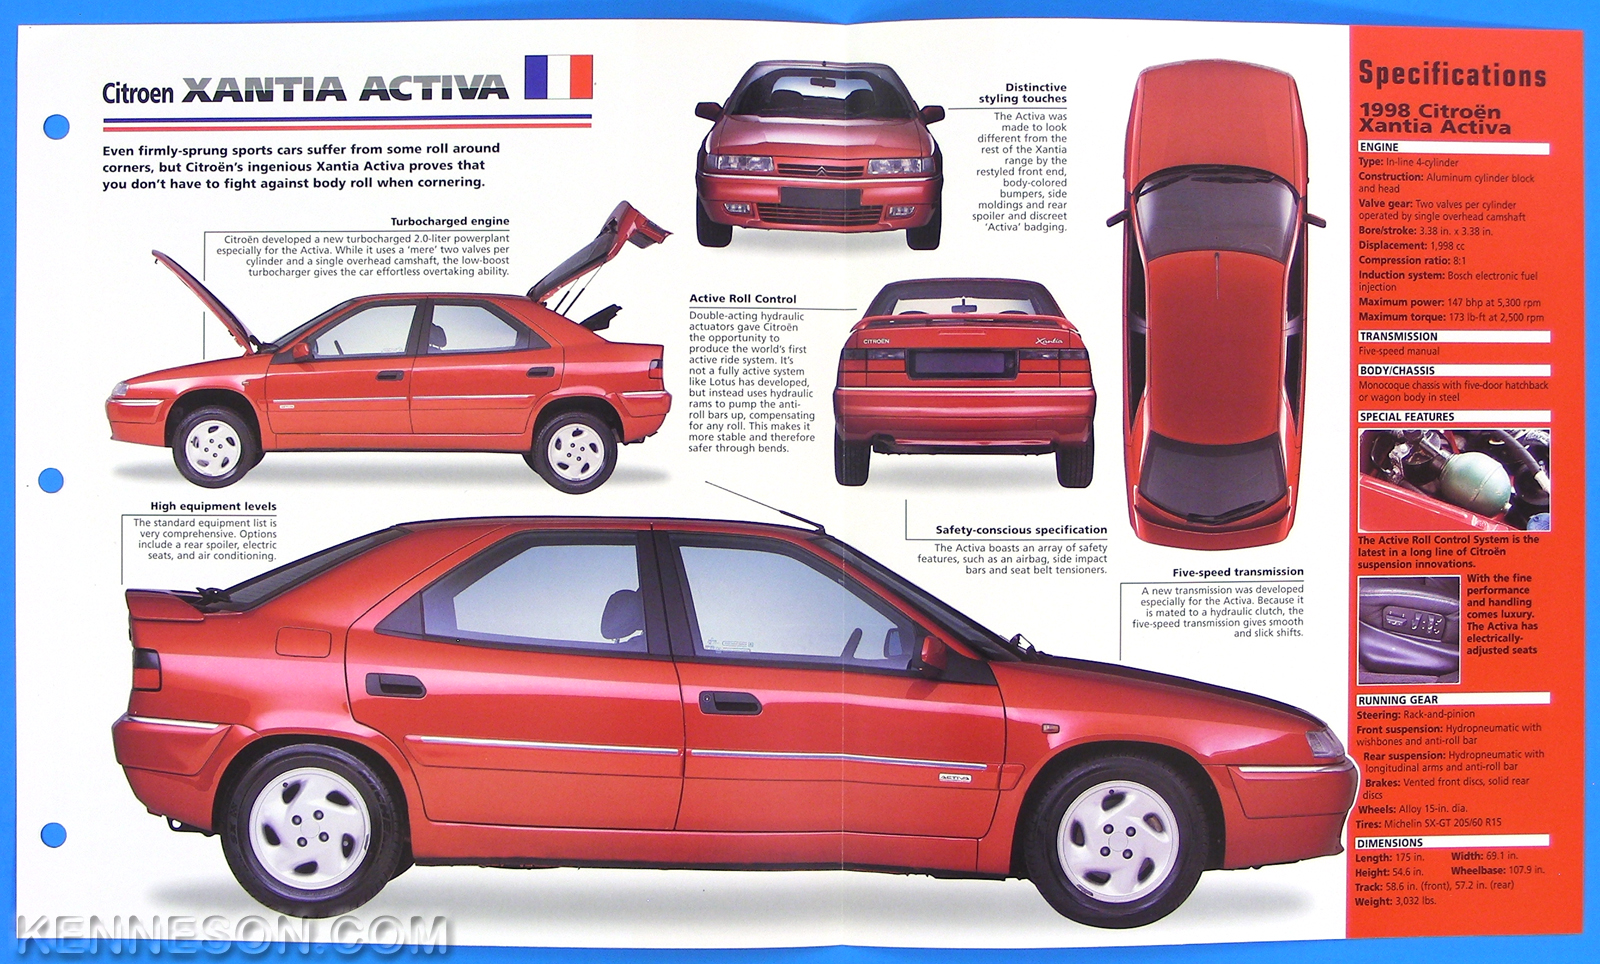 citroen xantia activa france 1995 1998 spec sheet brochure imp hot cars 1 34 ebay. Black Bedroom Furniture Sets. Home Design Ideas